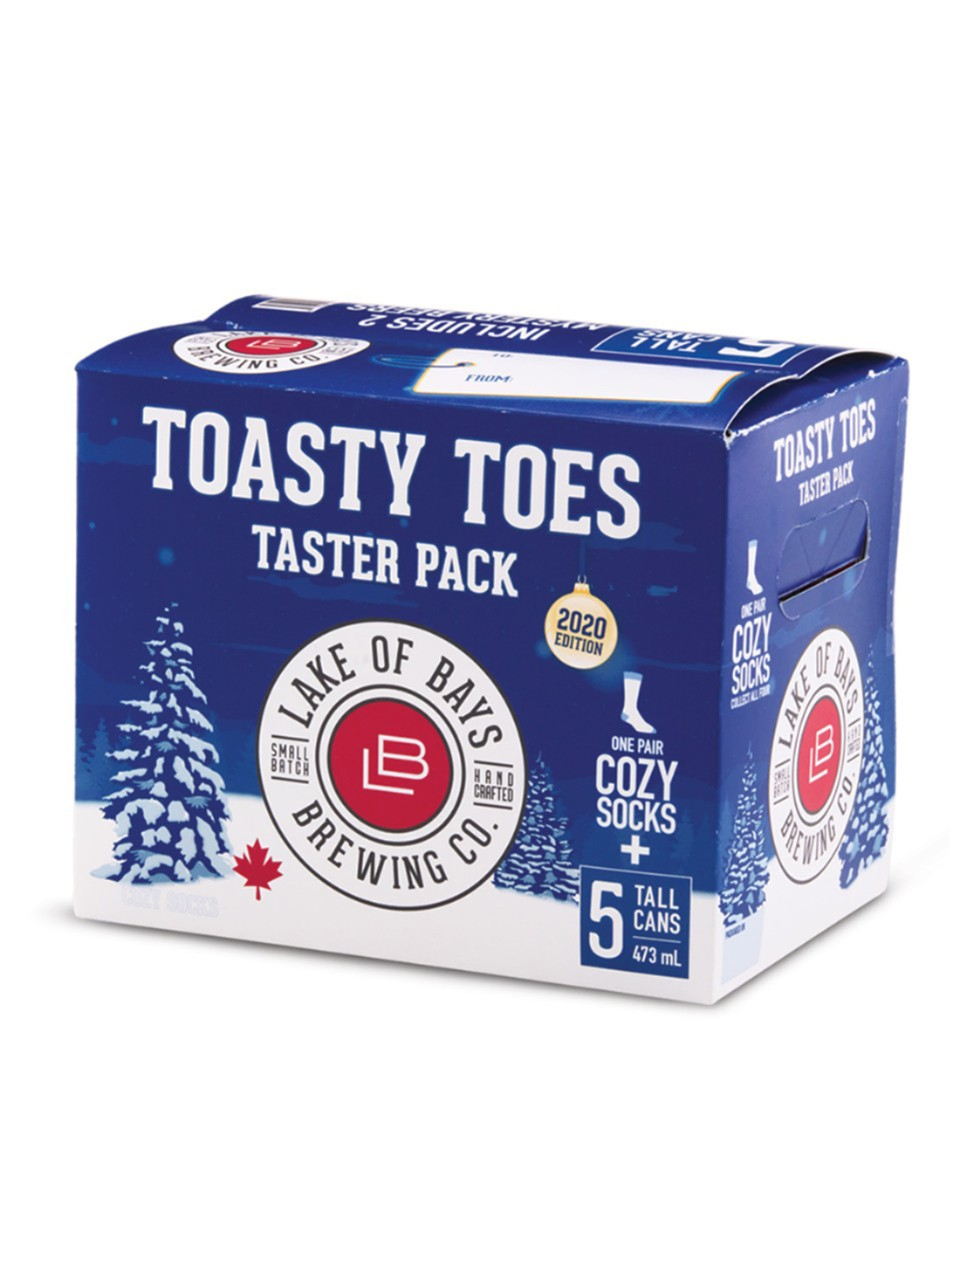 Lake Of Bays Toasty Toes Taster Pack from LCBO